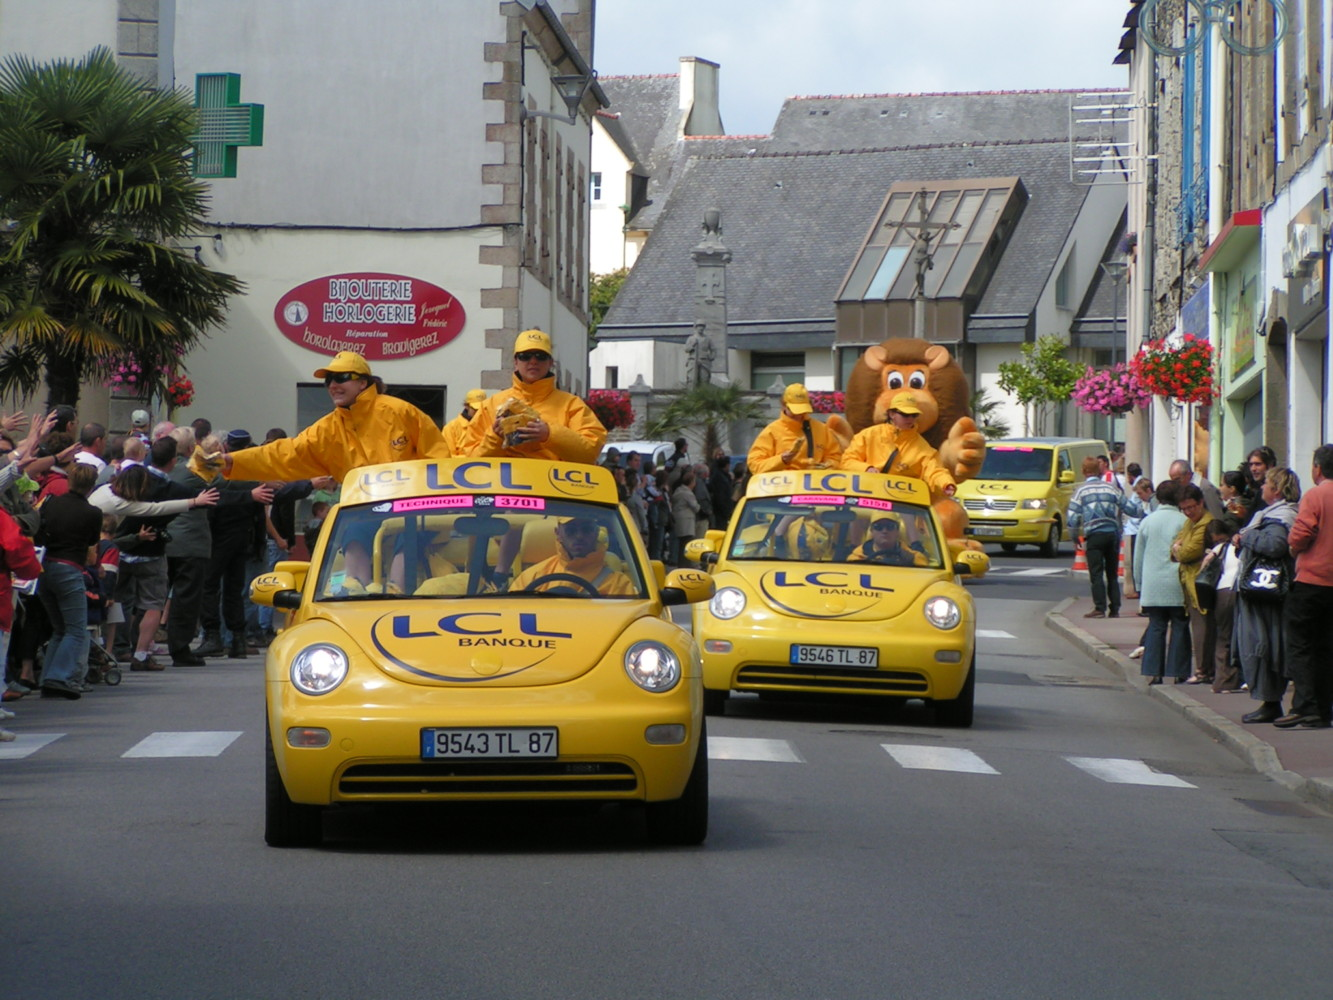 TOUR-DE-FRANCE-2008-CHATEAUNEUF-DU-FAOU-24